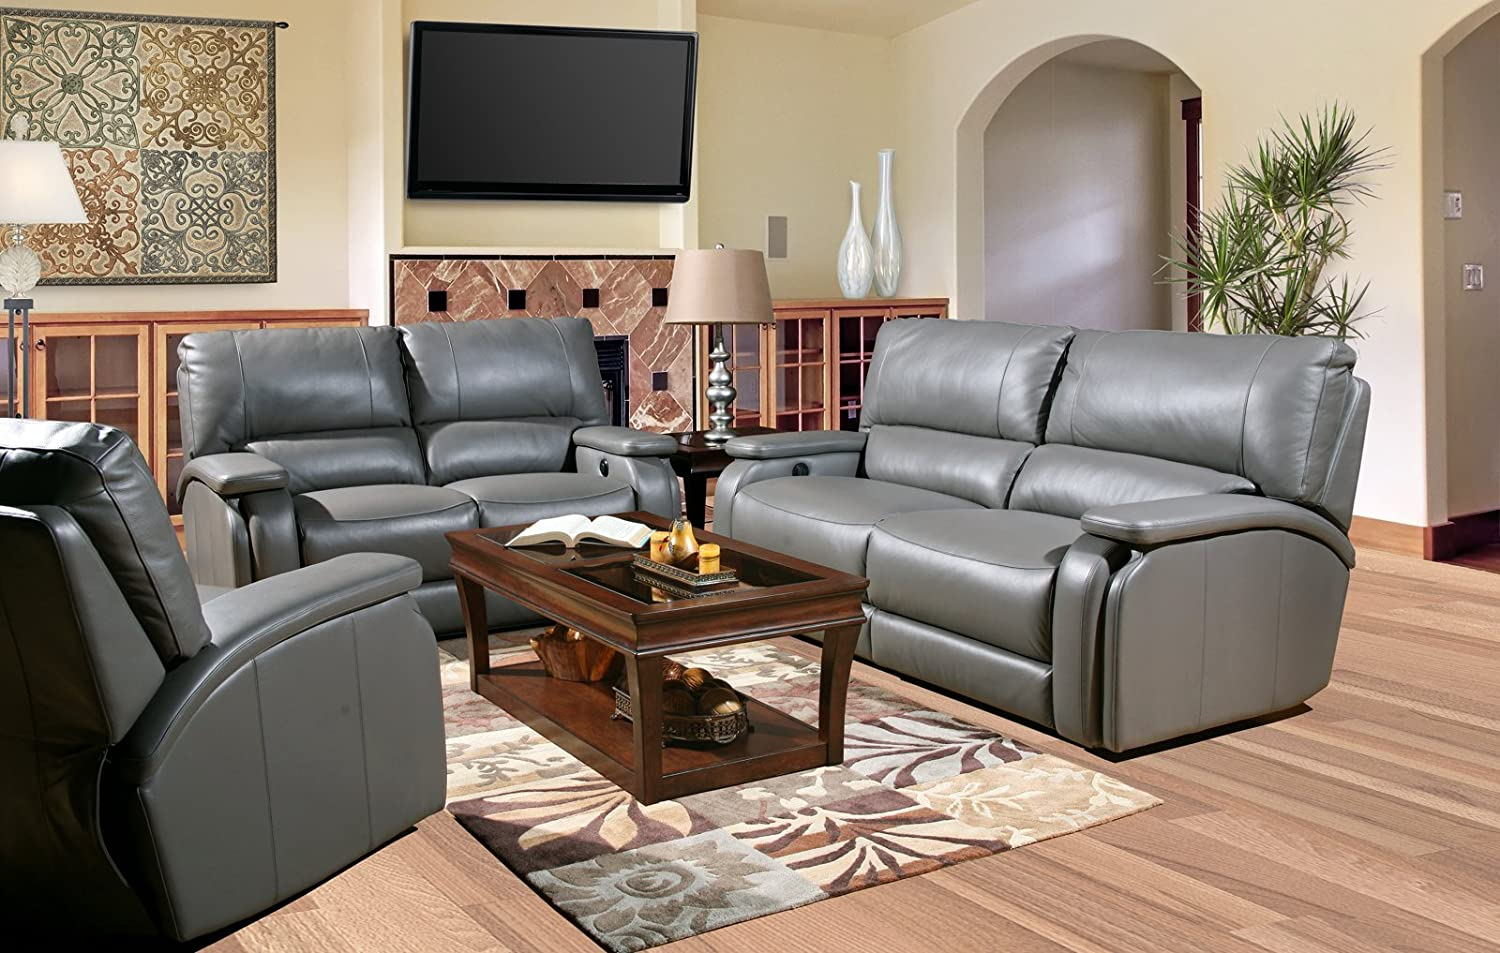 Amazon.com: Parker House Grisham Living Room Set With Sofa And Loveseat:  Kitchen U0026 Dining